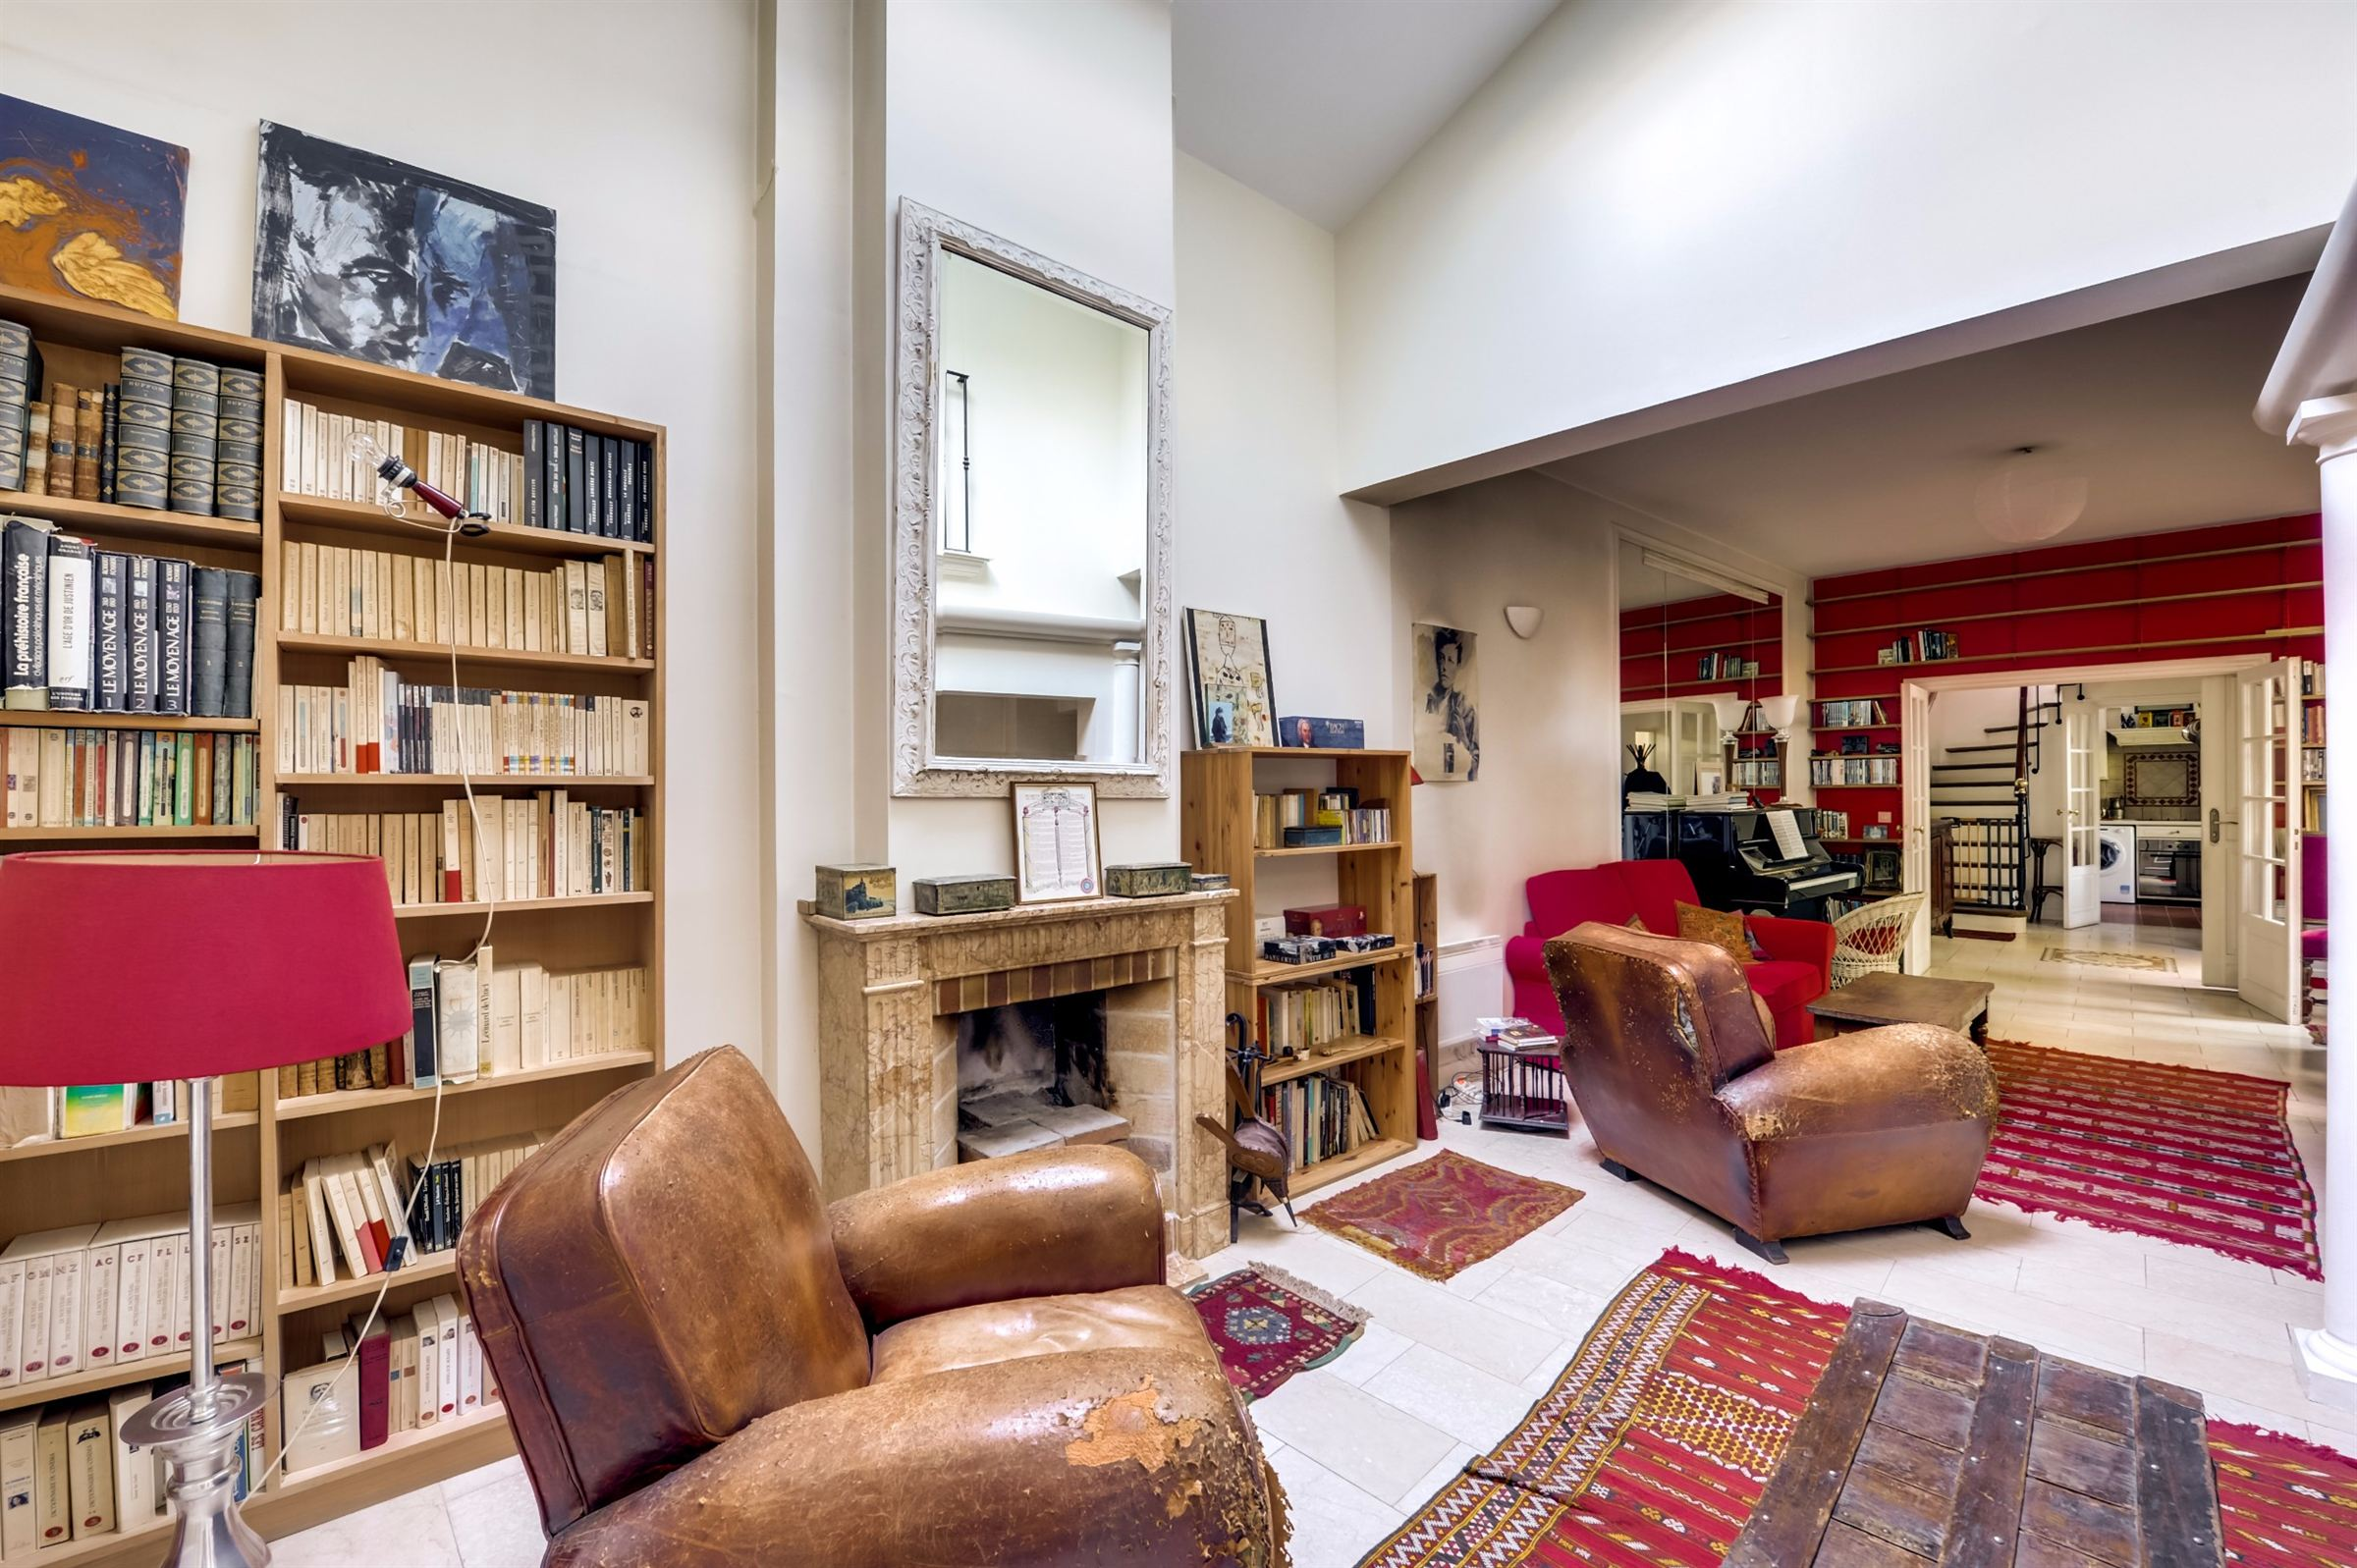 sales property at Charming town house for sale in Paris 14 - rue Daguerre, 5 bedrooms